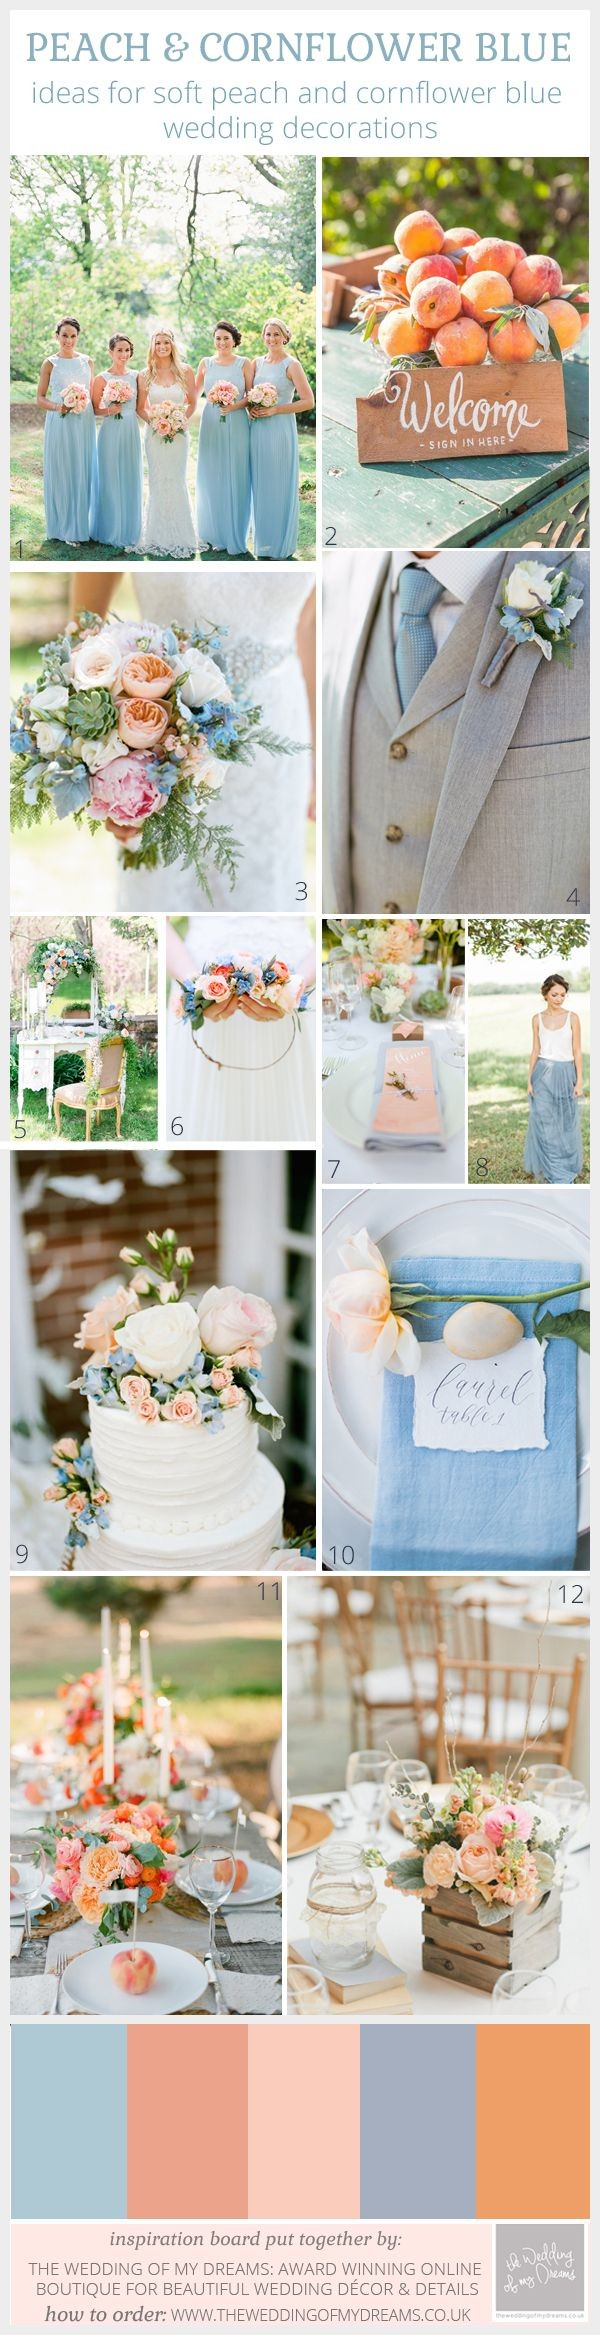 Future Wedding Ideas Plum And Gray Wedding Decorations Inspirational 222 Best Future